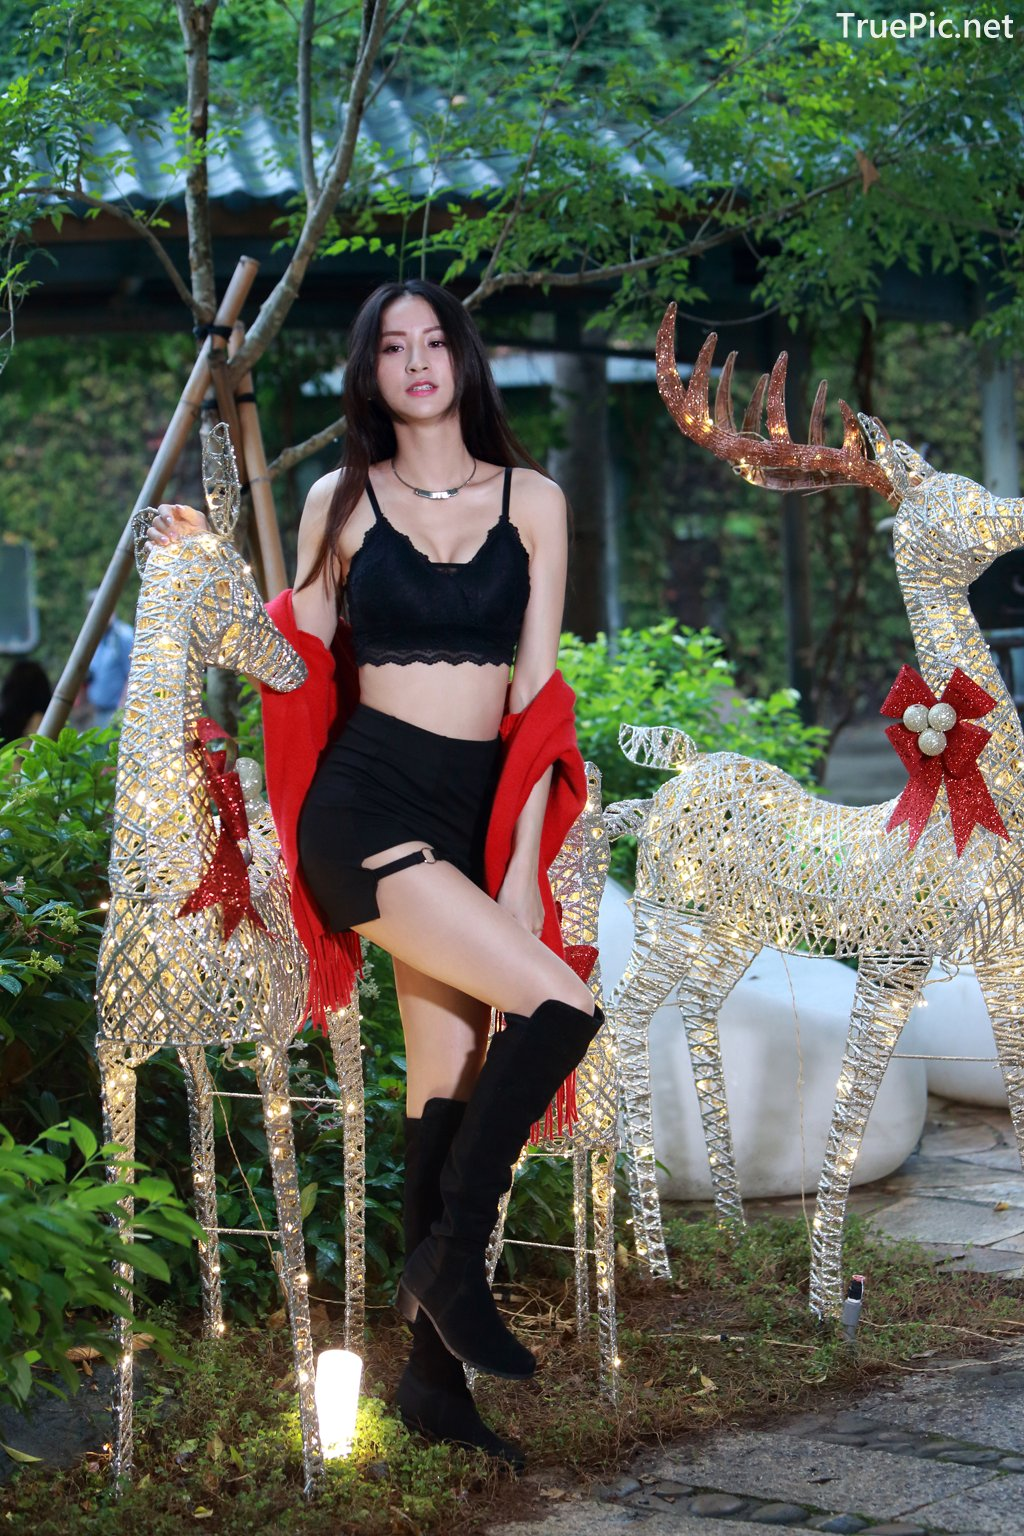 Image-Taiwanese-Beautiful-Long-Legs-Girl-雪岑Lola-Black-Sexy-Short-Pants-and-Crop-Top-Outfit-TruePic.net- Picture-69